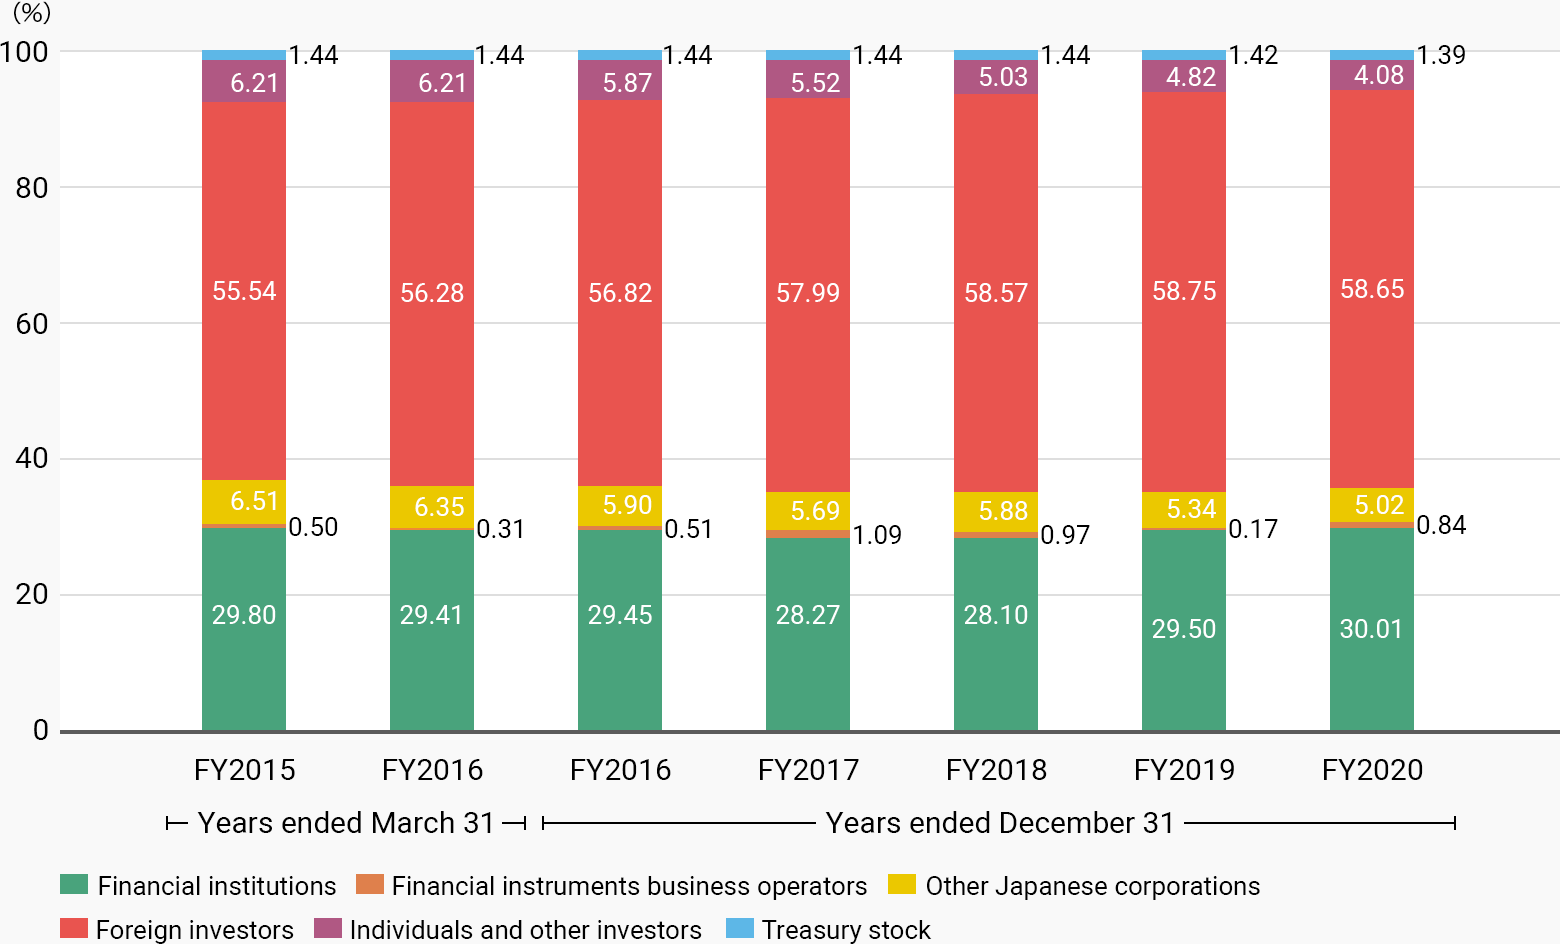 FY2015, Financial institutions 29.80%, Financial instruments business operators 0.50%, Other Japanese corporations 6.51%, Foreign investors 55.54%, Individuals and other investors 6.21%, Treasury stock 1.44%. FY2016, Financial institutions 29.80%, Financial instruments business operators 0.31%, Other Japanese corporations 6.35%, Foreign investors 56.28%, Individuals and other investors 6.21%, Treasury stock 1.44%. FY2016, Financial institutions 29.45%, Financial instruments business operators 0.51%, Other Japanese corporations 5.90%, Foreign investors 56.82%, Individuals and other investors 5.87%, Treasury stock 1.44%. FY2017, Financial institutions 28.27%, Financial instruments business operators 1.09%, Other Japanese corporations 5.69%, Foreign investors 57.99%, Individuals and other investors 5.52%, Treasury stock 1.44%. FY2018, Financial institutions 28.10%, Financial instruments business operators 0.97%, Other Japanese corporations 5.88%, Foreign investors 58.57%, Individuals and other investors 5.03%, Treasury stock 1.44%. FY2019, Financial institutions 29.50%, Financial instruments business operators 0.17%, Other Japanese corporations 5.34%, Foreign investors 58.75%, Individuals and other investors 4.82%, Treasury stock 1.42%. FY2020, Financial institutions 30.01%, Financial instruments business operators 0.84%, Other Japanese corporations 5.02%, Foreign investors 58.65%, Individuals and other investors 4.08%, Treasury stock 1.39%.